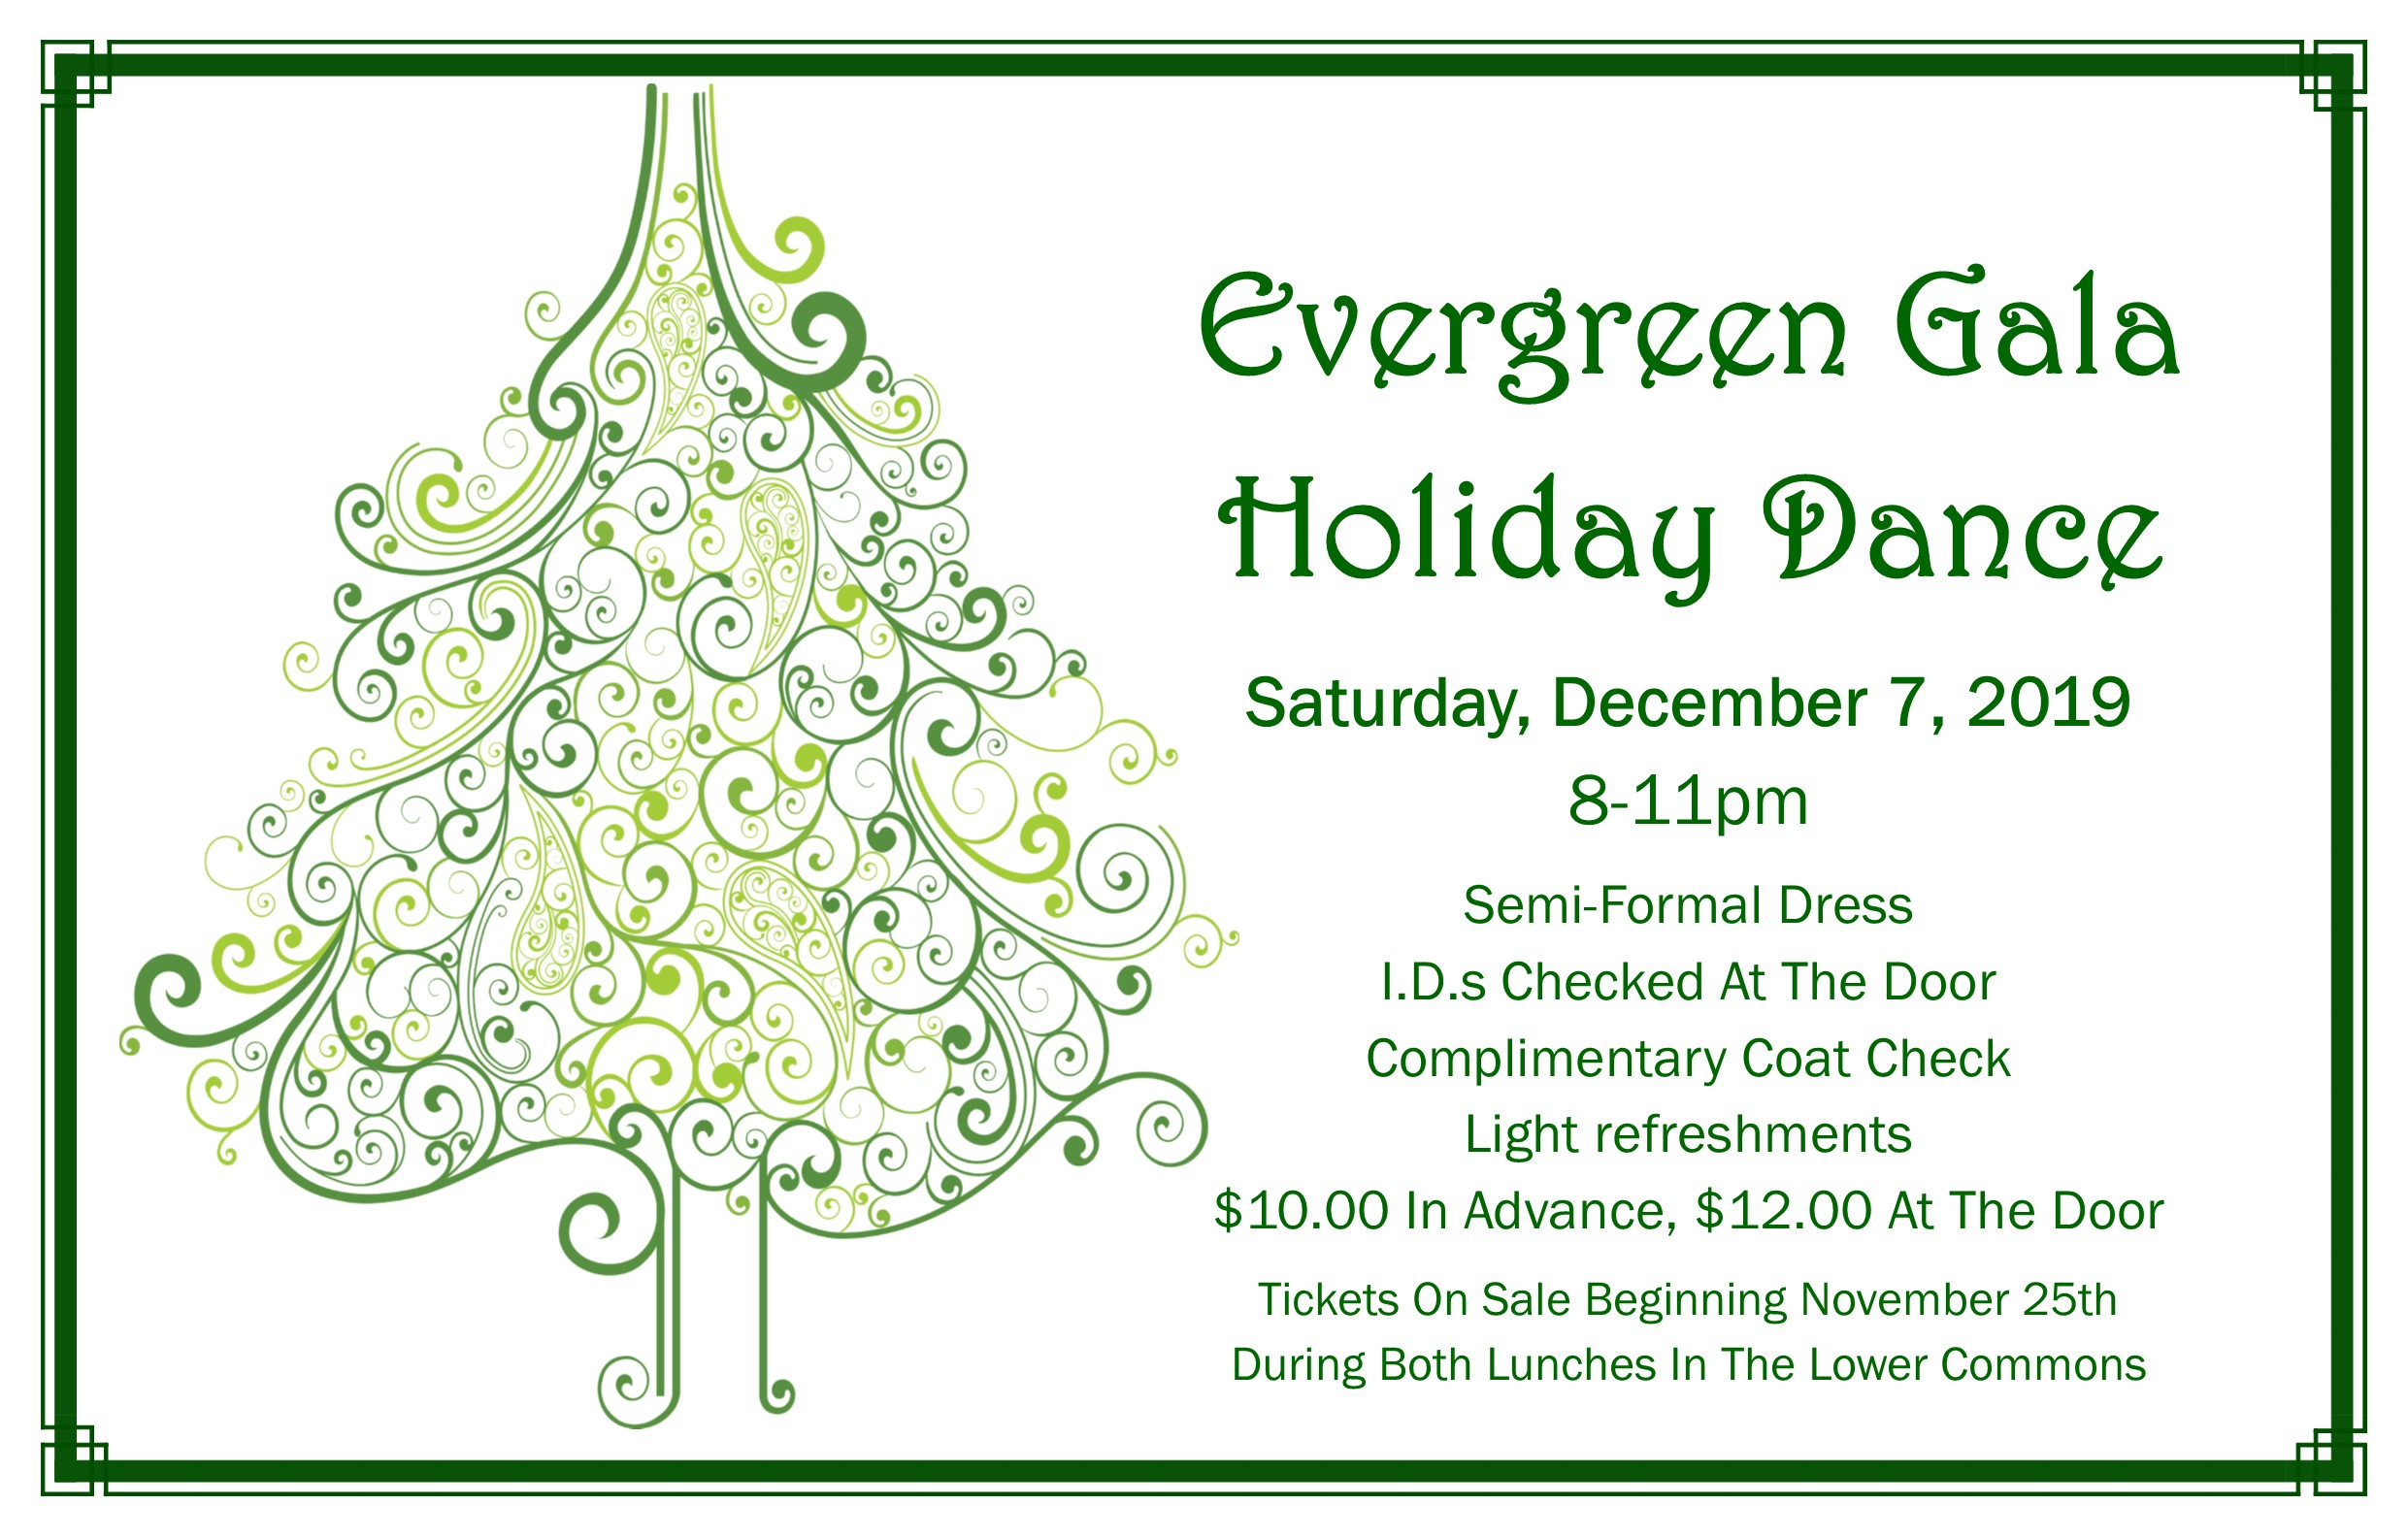 holiday dance flyer